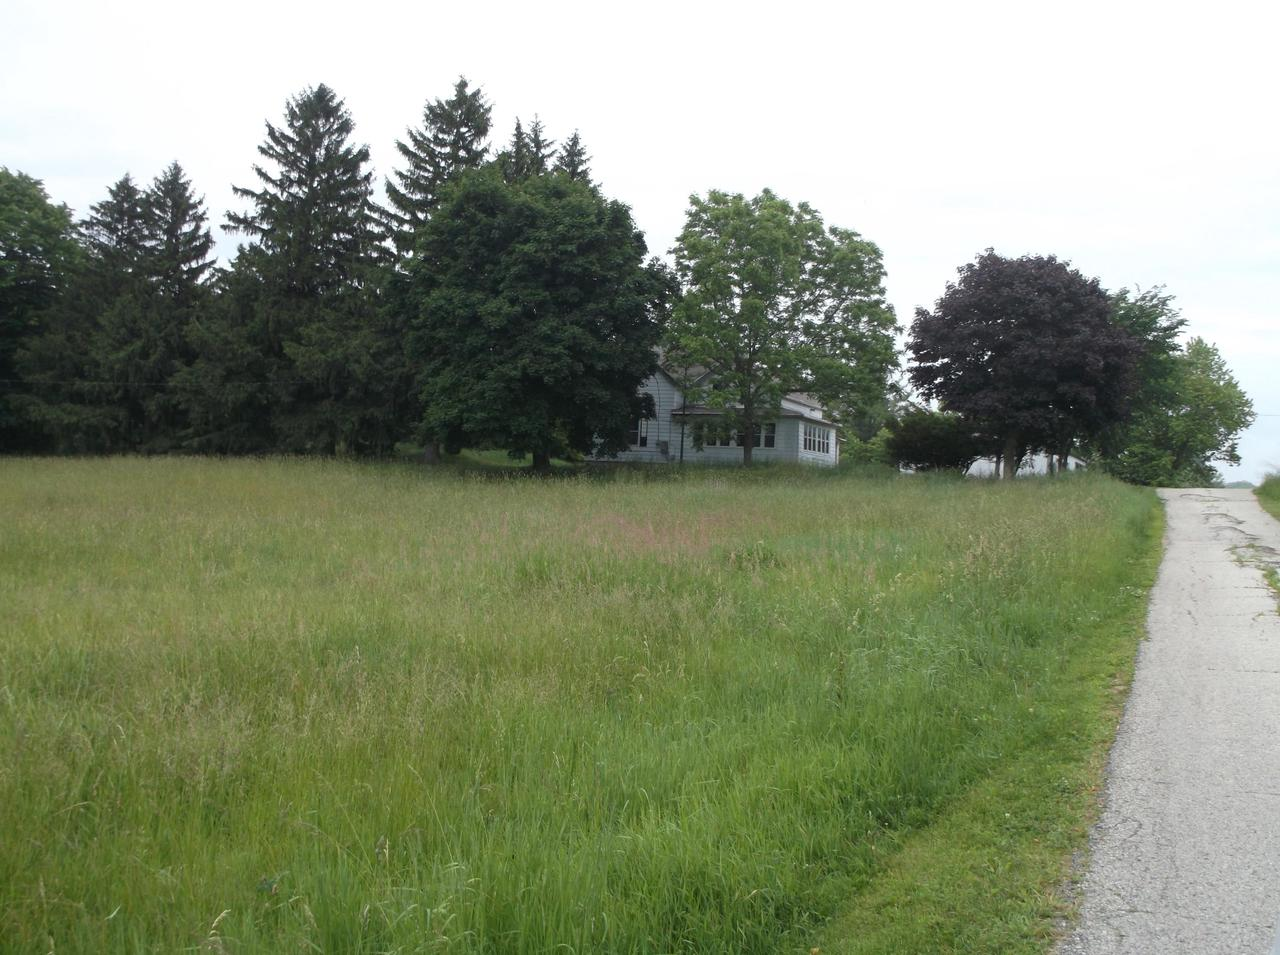 Rural farm house with 30x54 metal pole shed. House needs work to make it a home again. Basement has outdoor access. The setting is great witha west front window view, and a large grass field in front so you can watch the sunsets. This is a Fannie Mae HomePath property. Sq approx